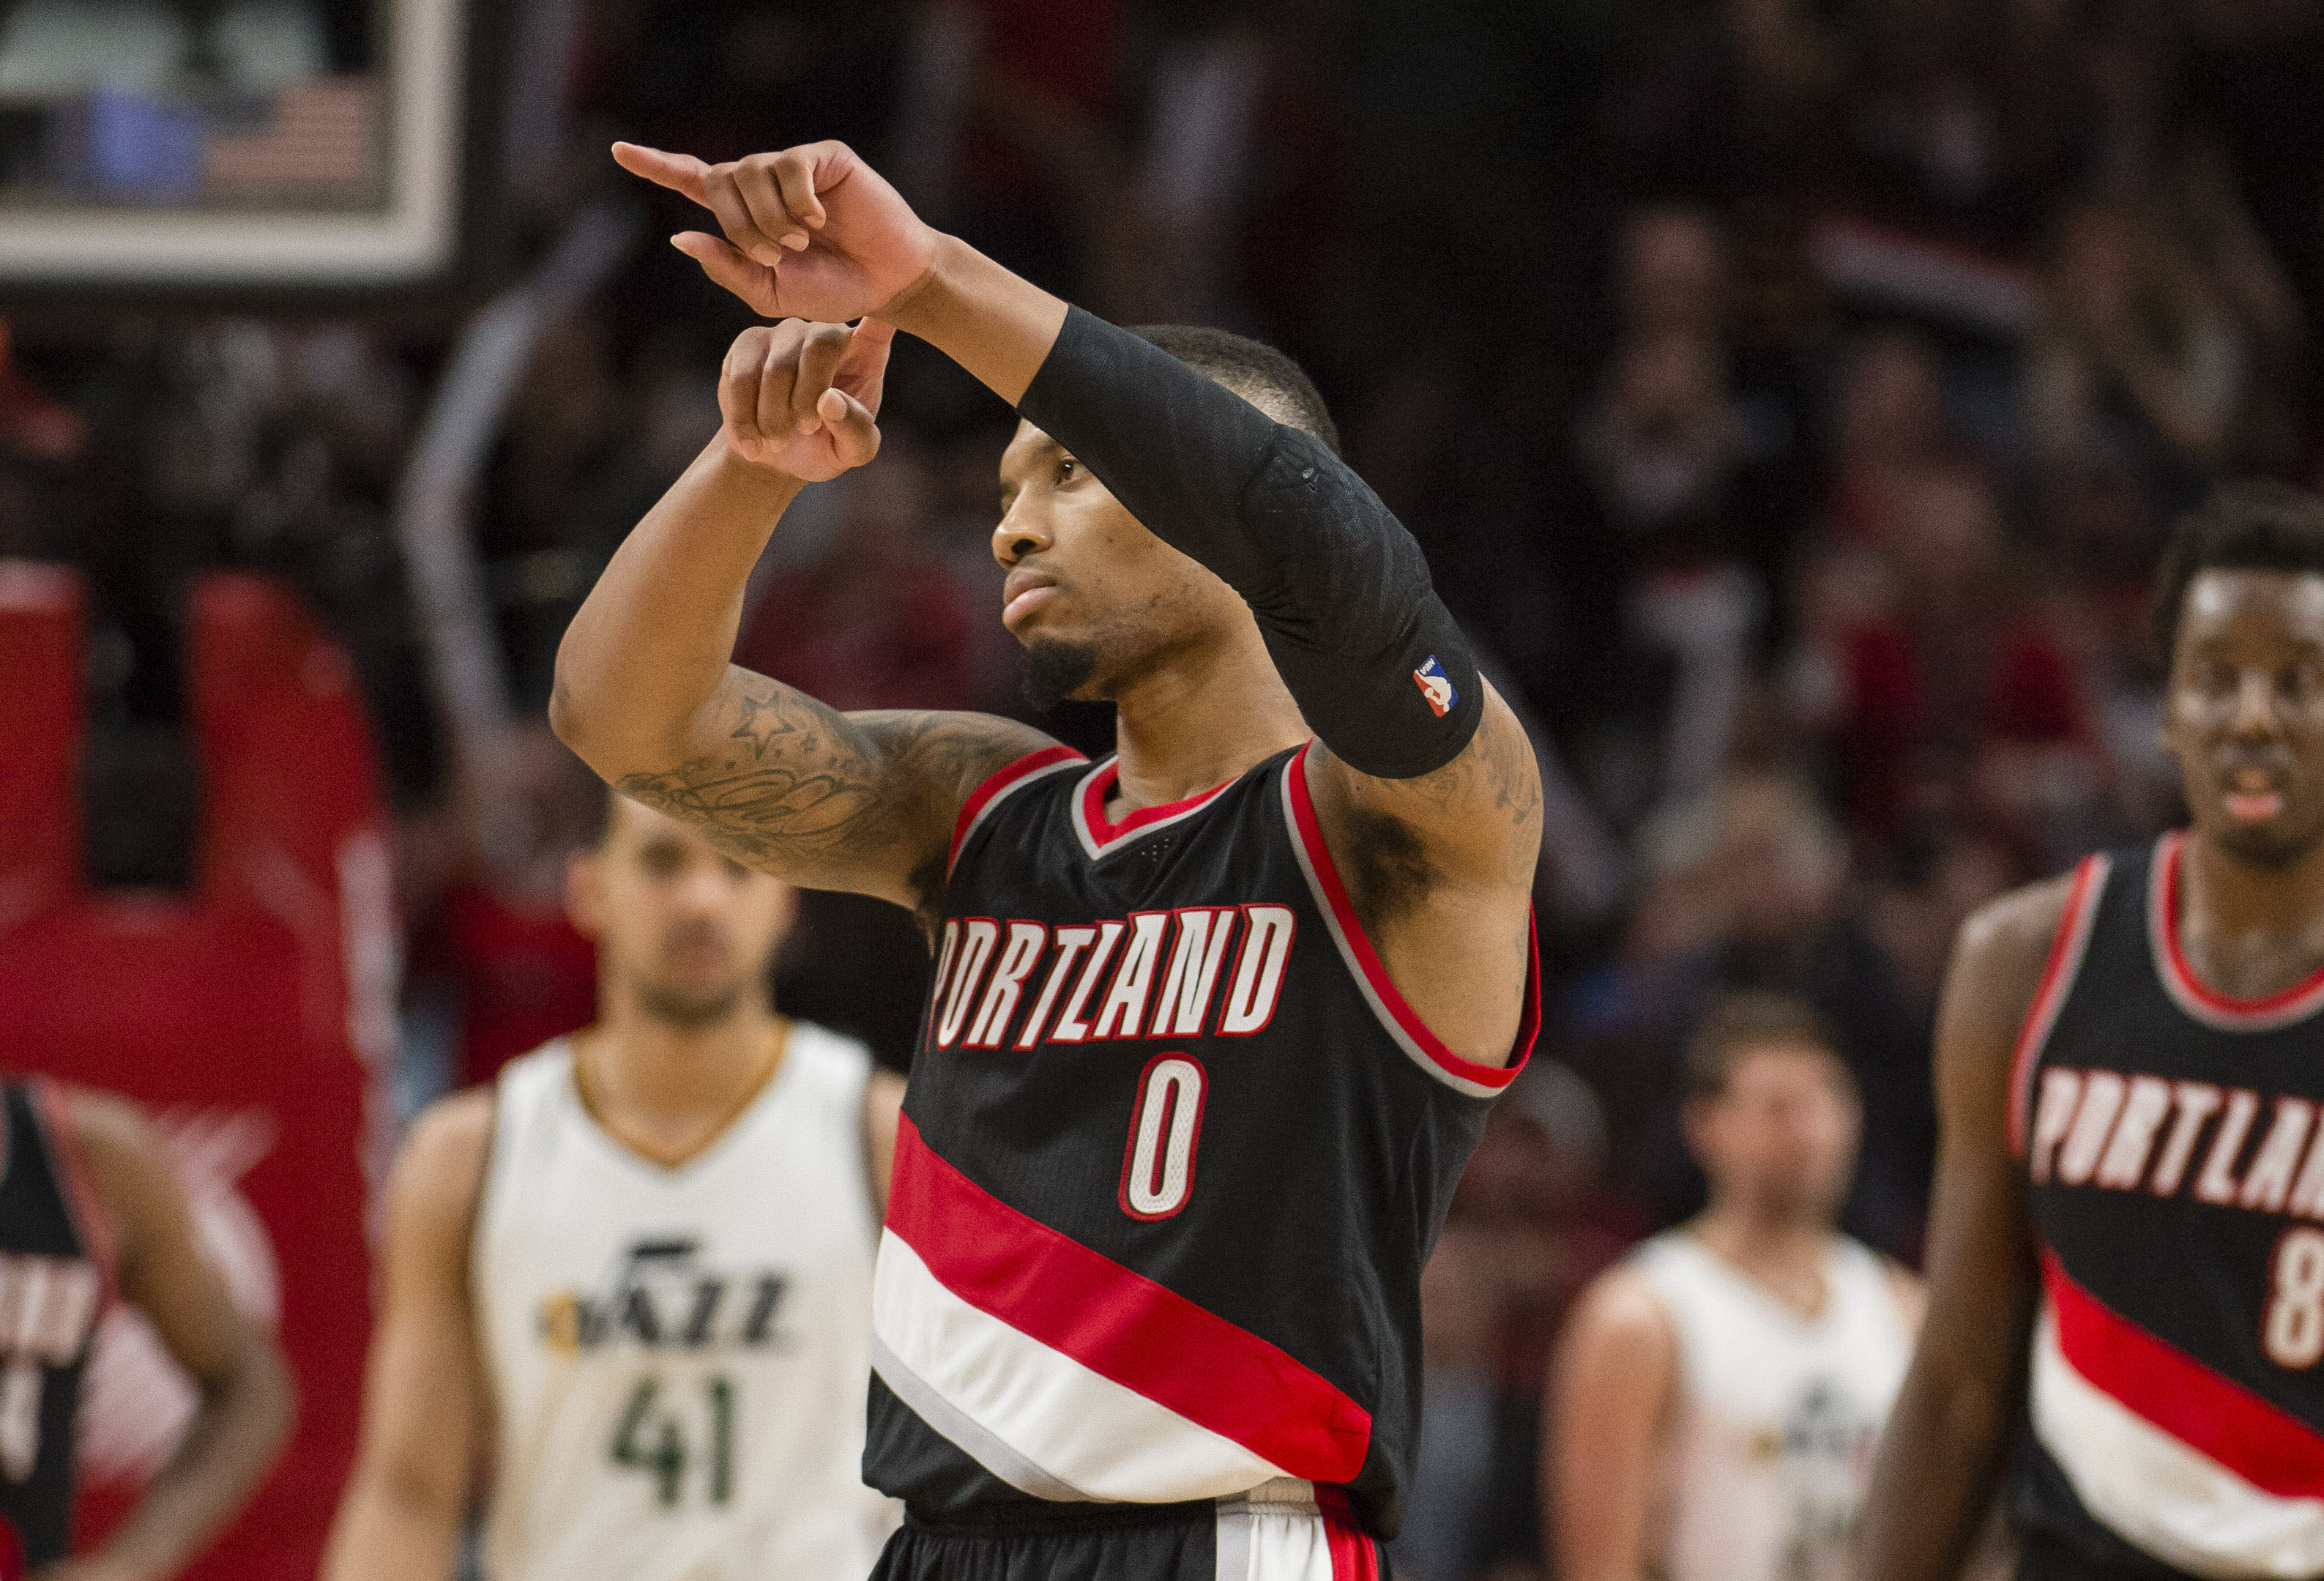 Damian Lillard Scores Career High 59 Points in Win Over Jazz